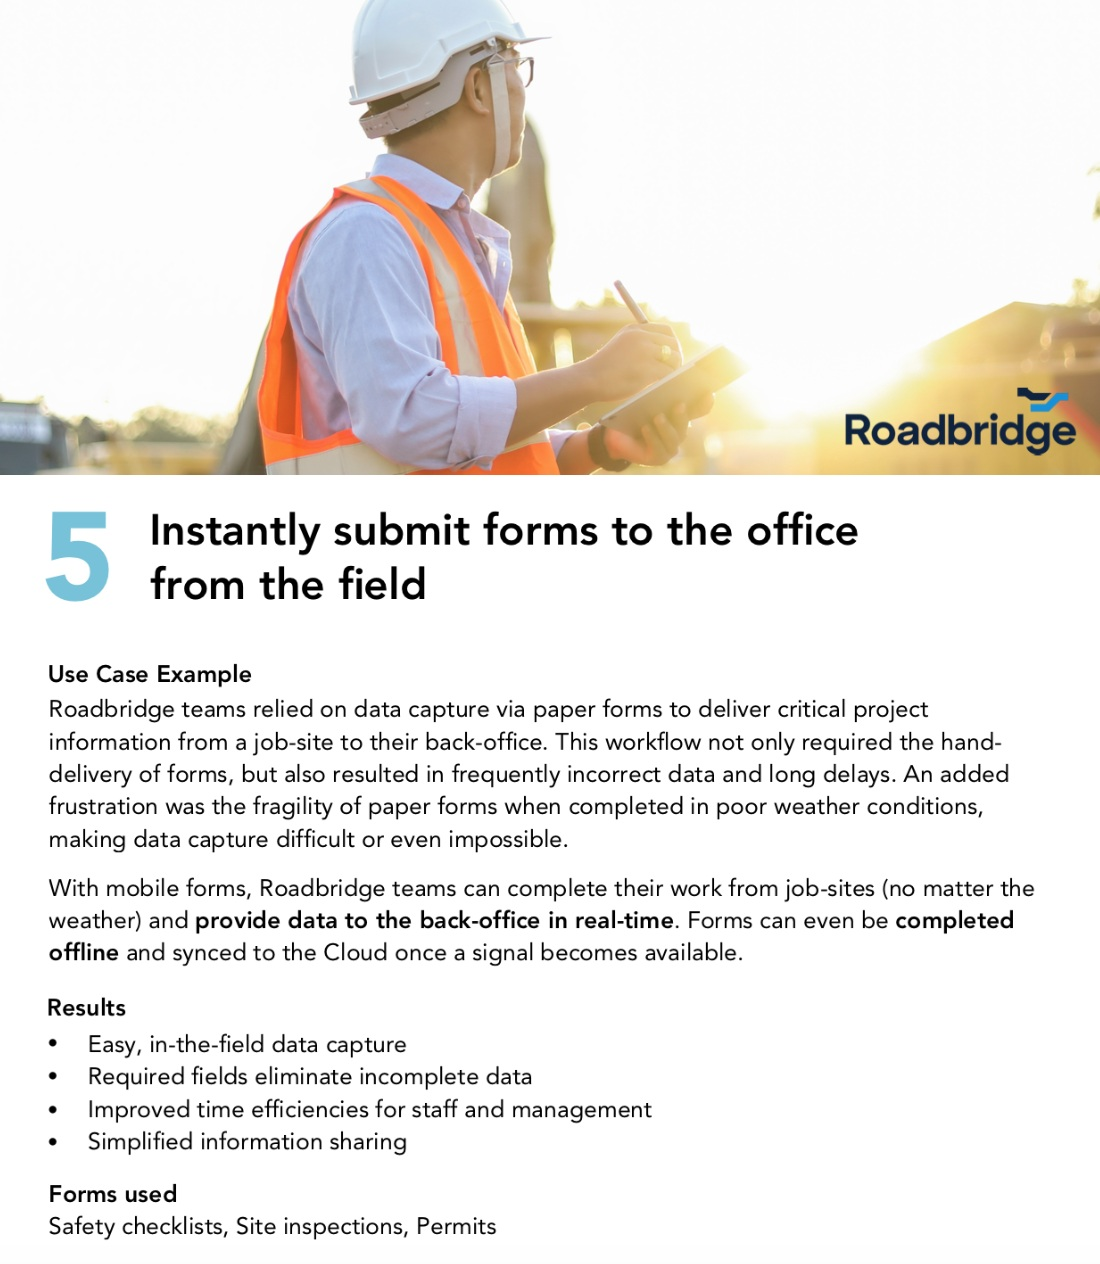 7 common use cases for construction mobile forms ebook - roadbridge real-time data